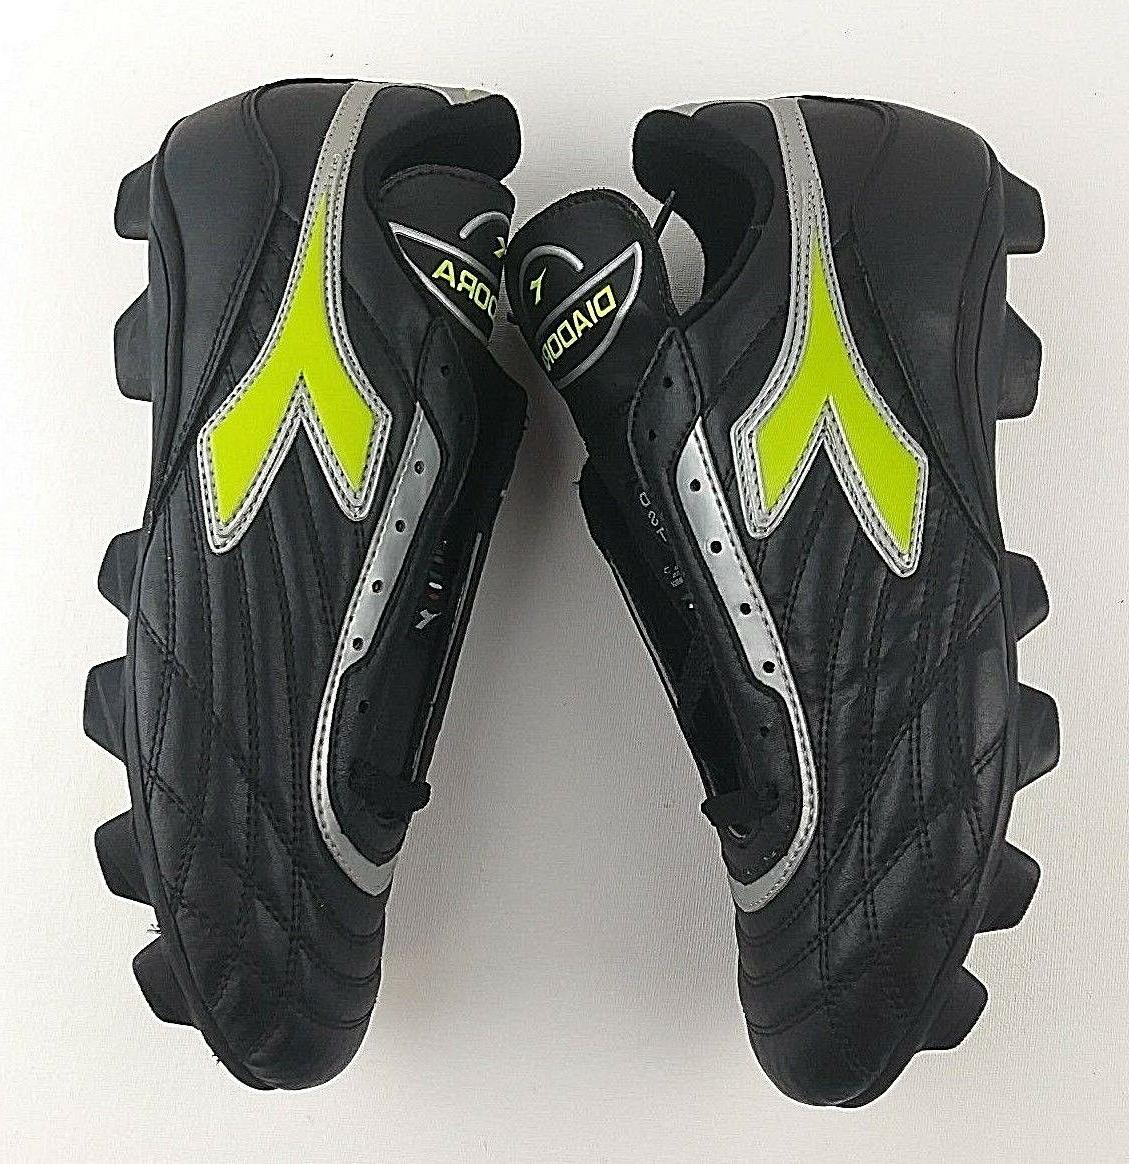 NEW!! Diadora RTX Soccer Black Yellow Assorted Sizes